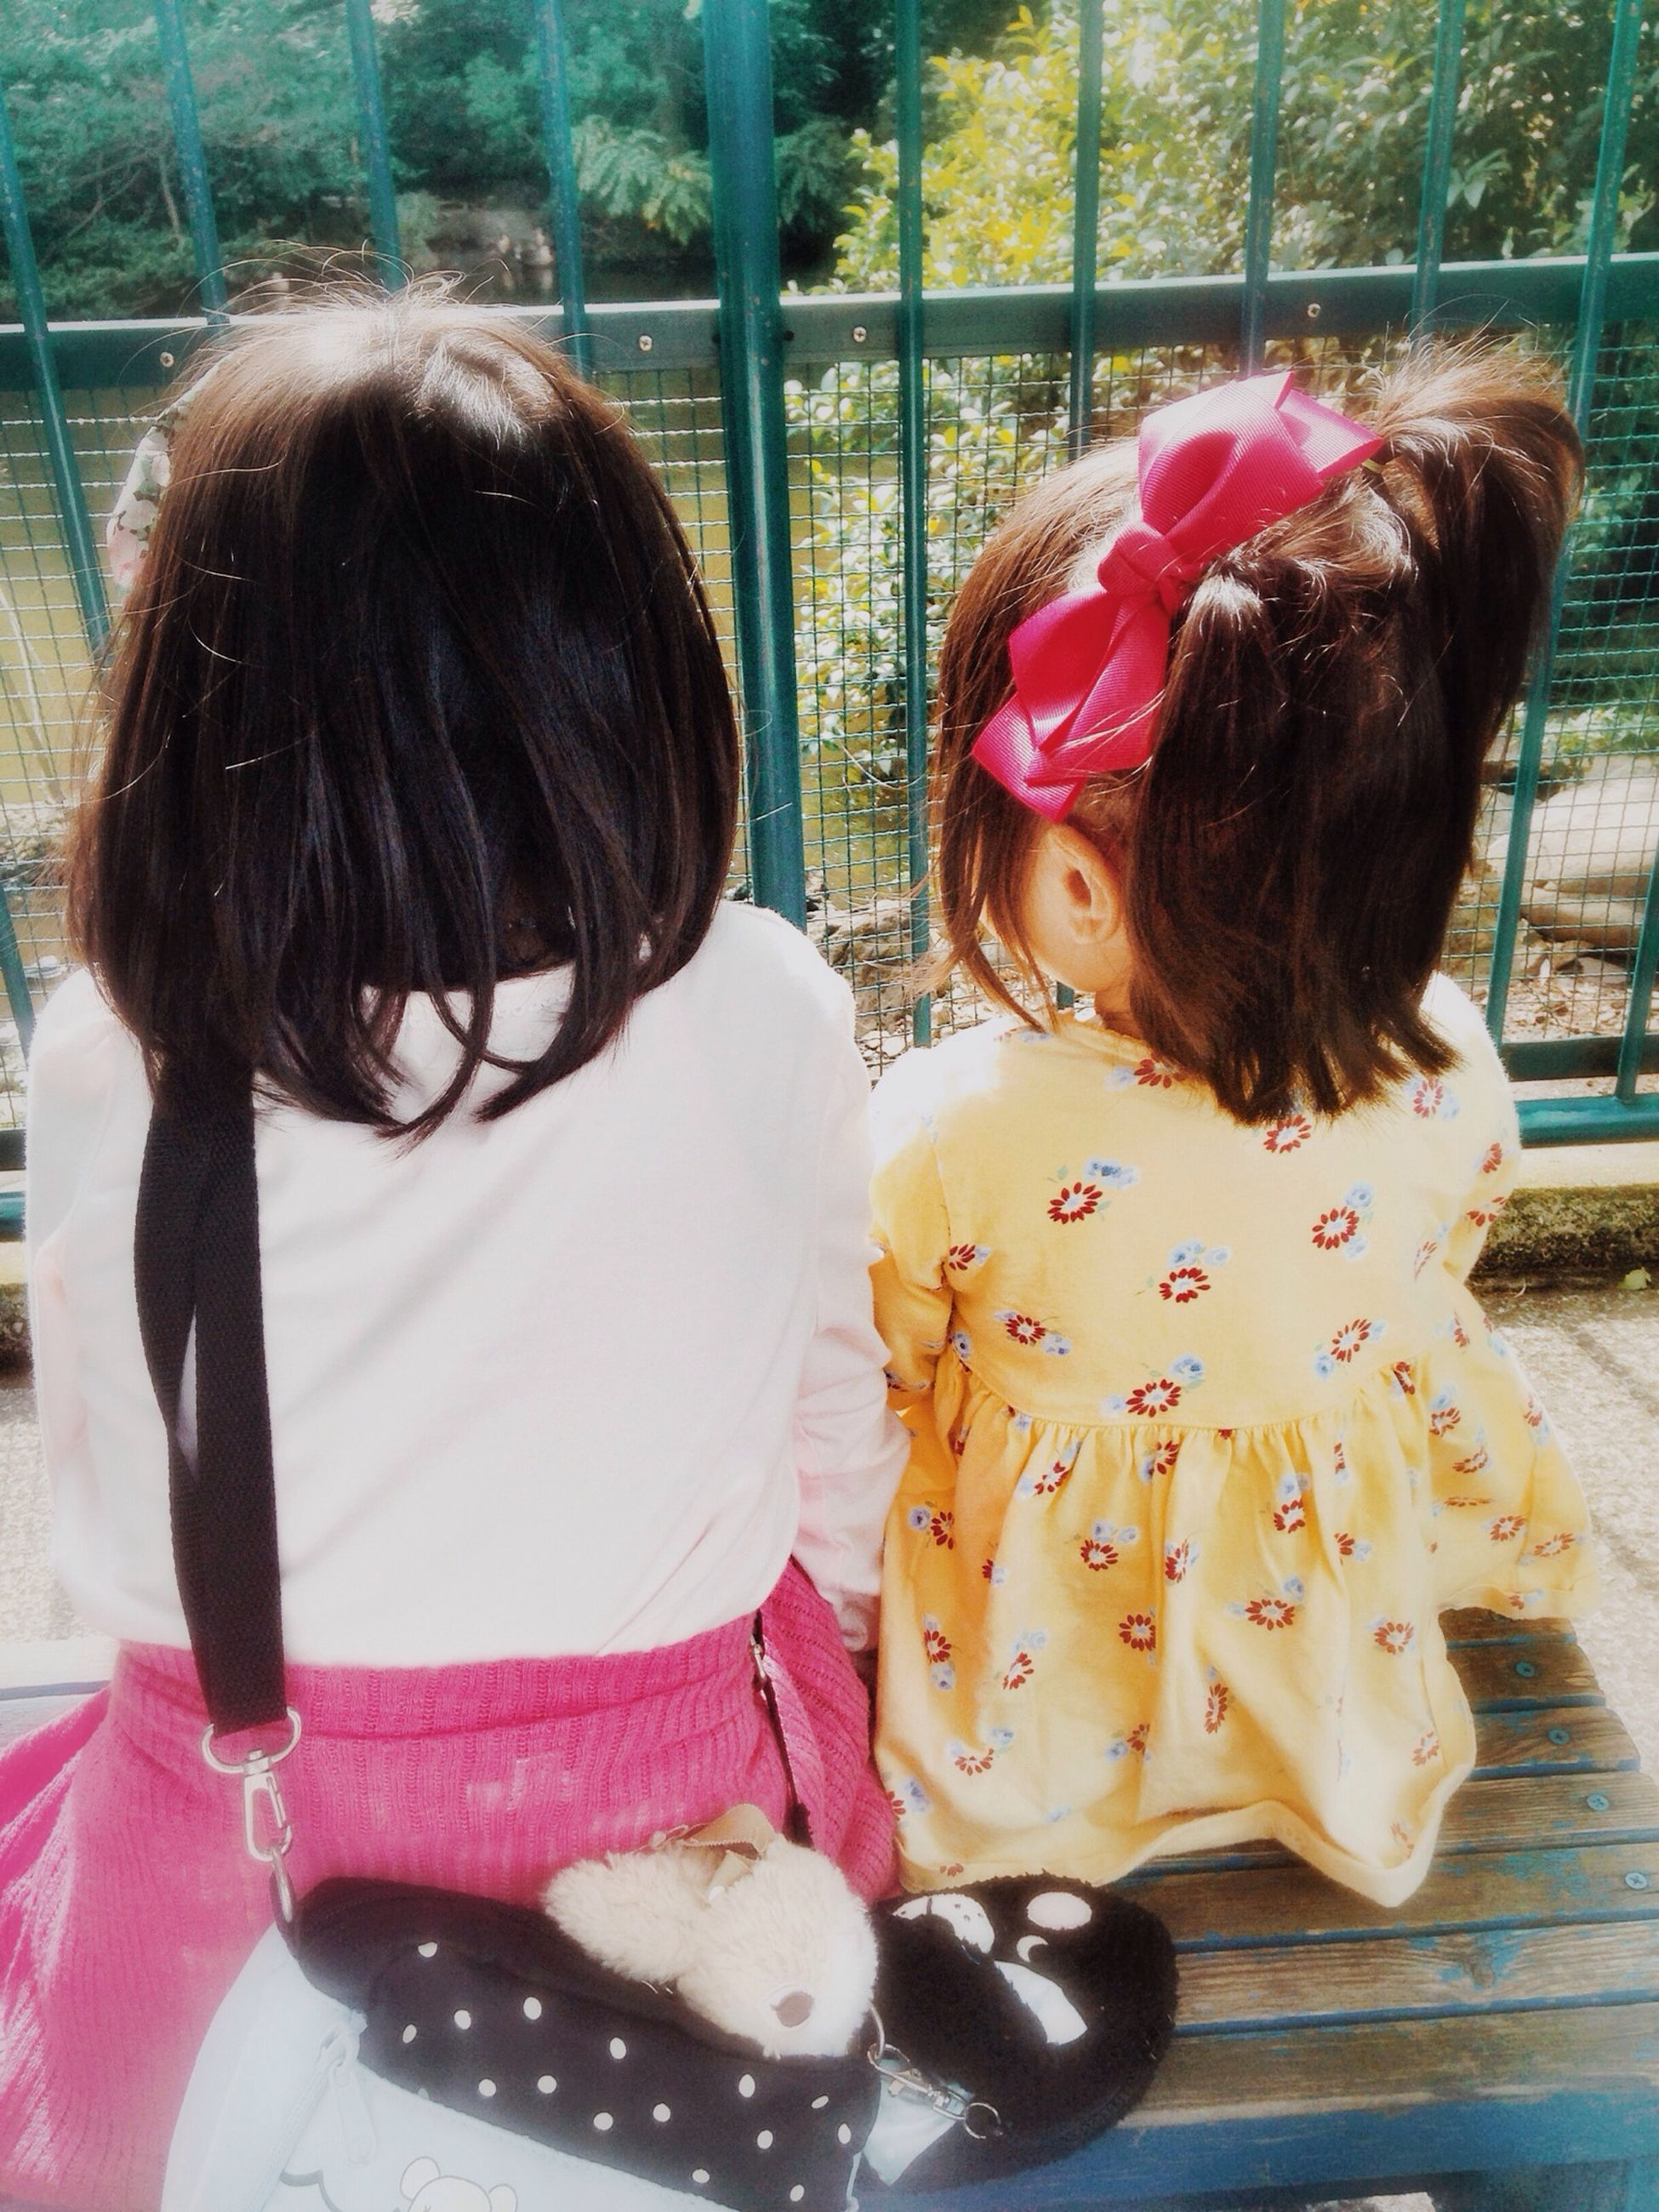 childhood, girls, elementary age, person, lifestyles, leisure activity, cute, innocence, casual clothing, boys, blond hair, togetherness, bonding, sitting, preschool age, love, long hair